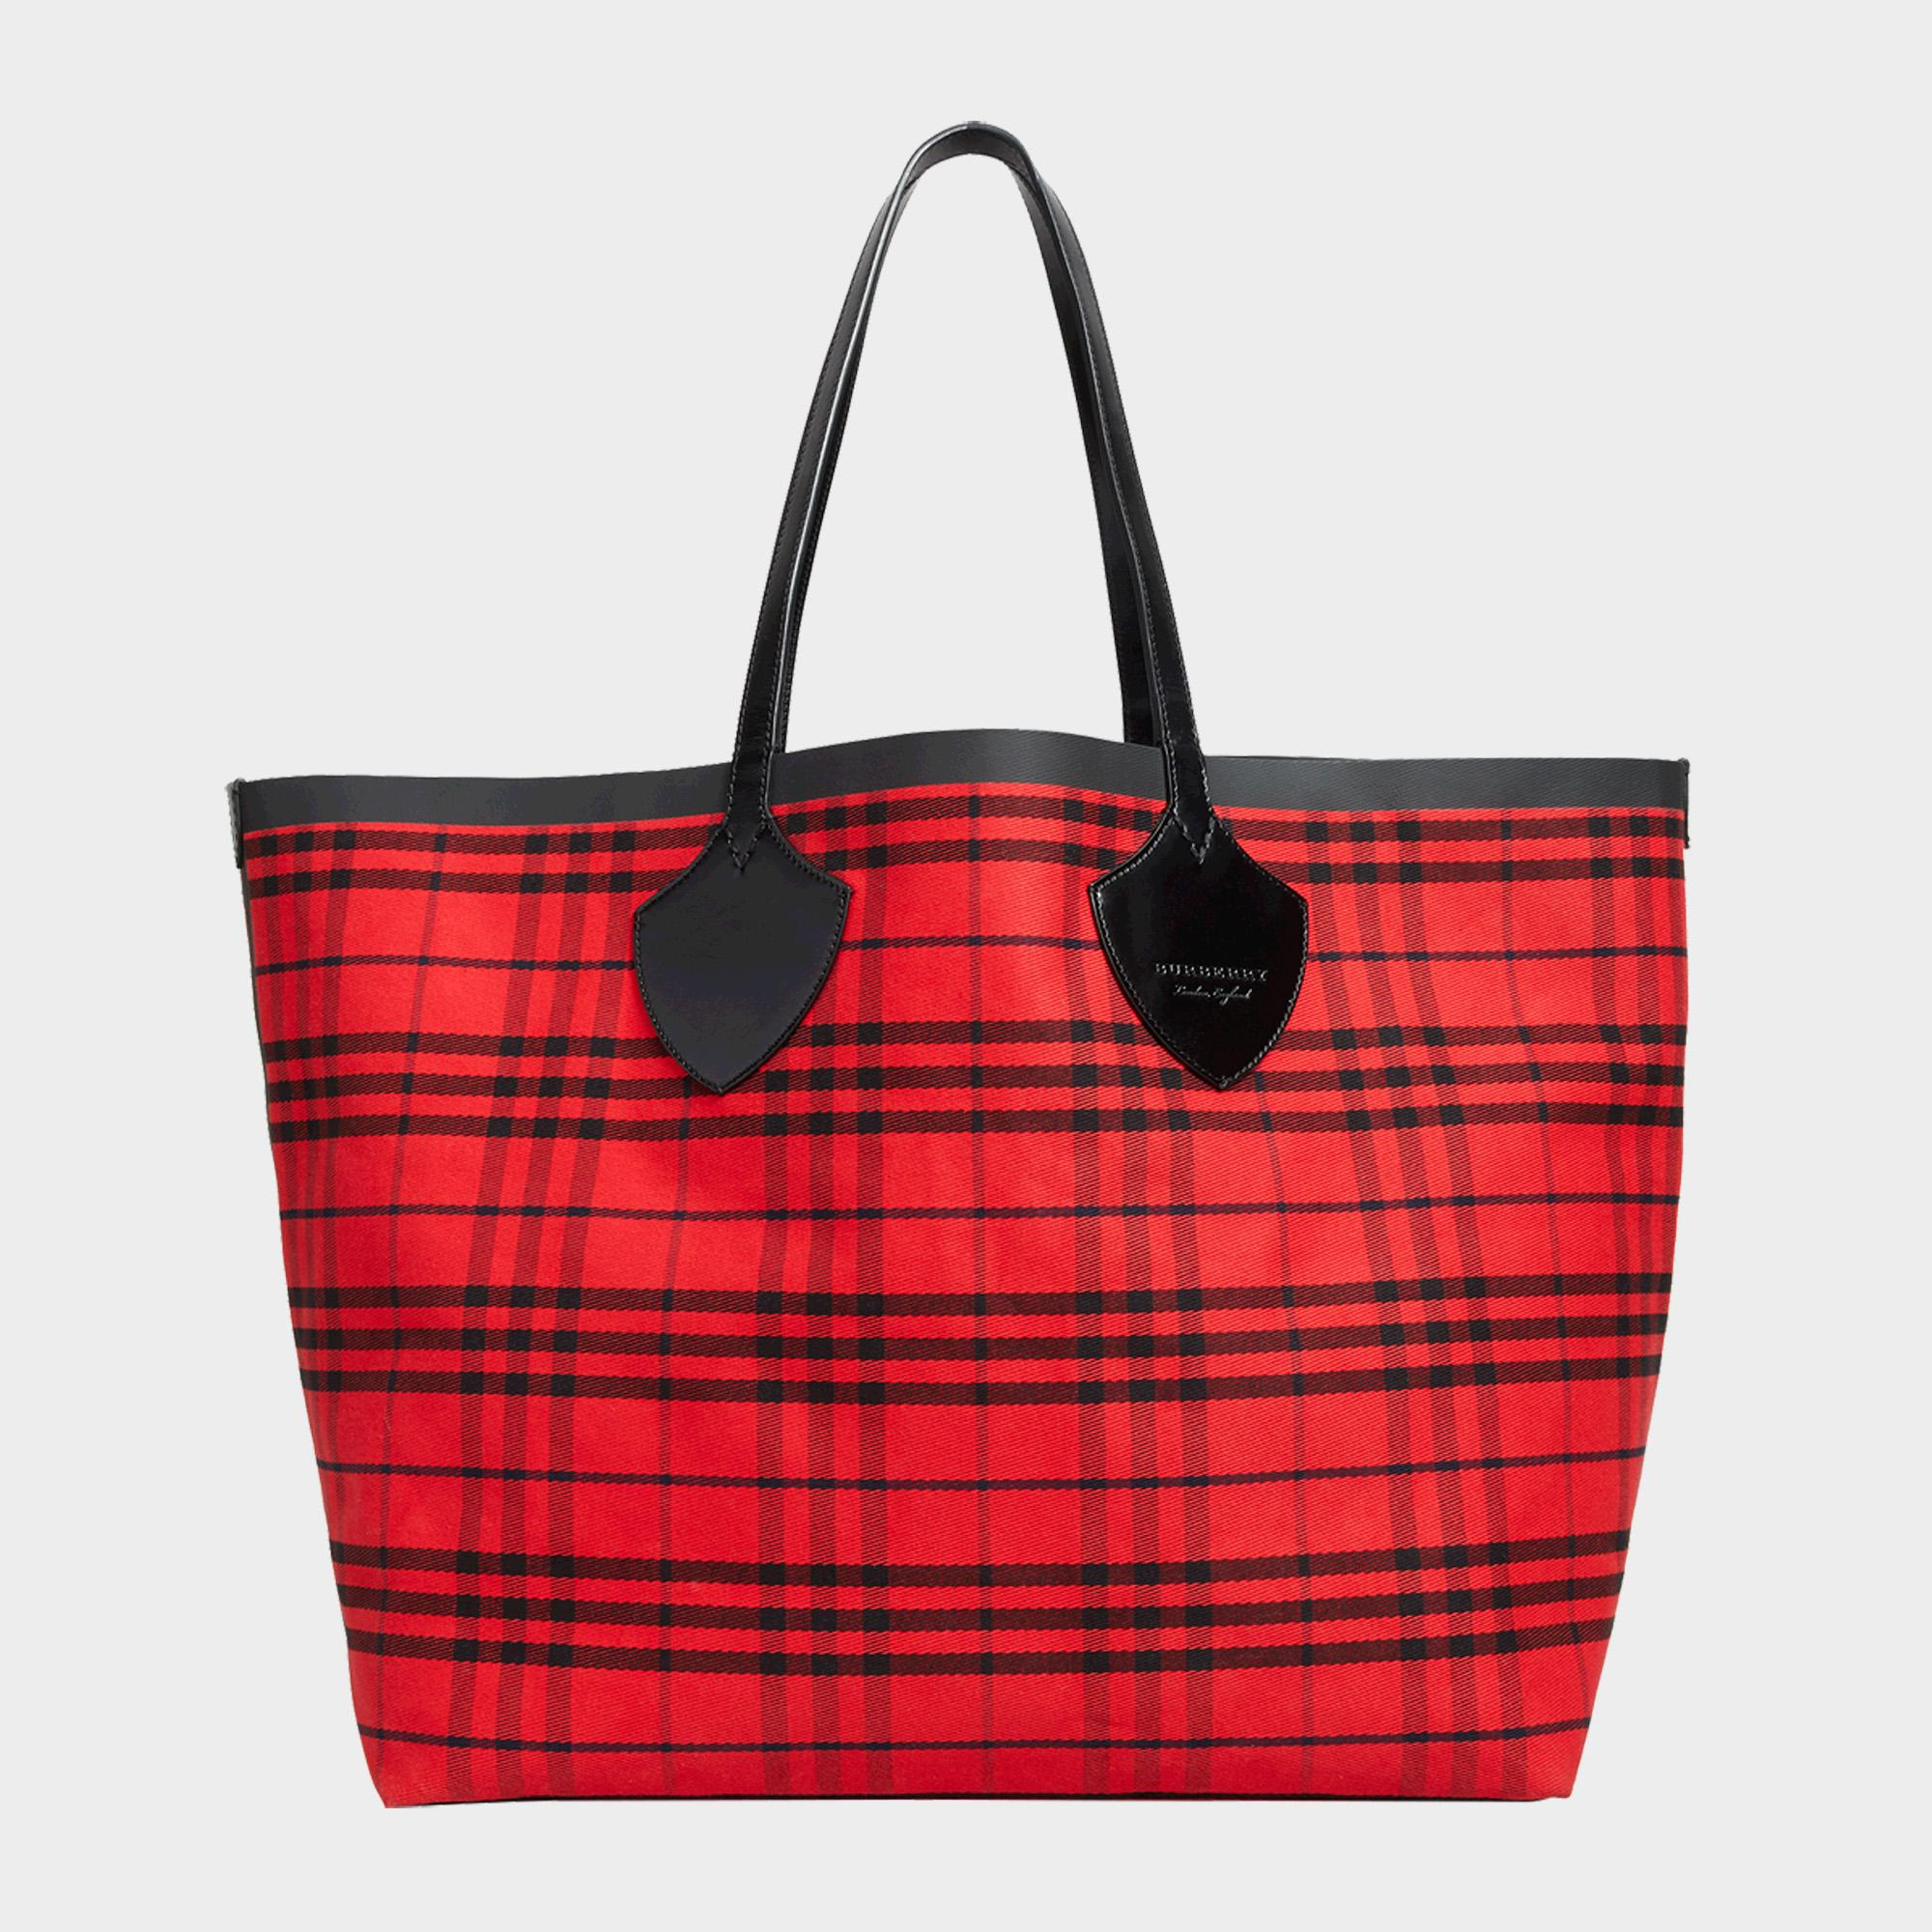 Burberry The Giant Reversible Tote Bag In Ink Blue And Military Red Cotton